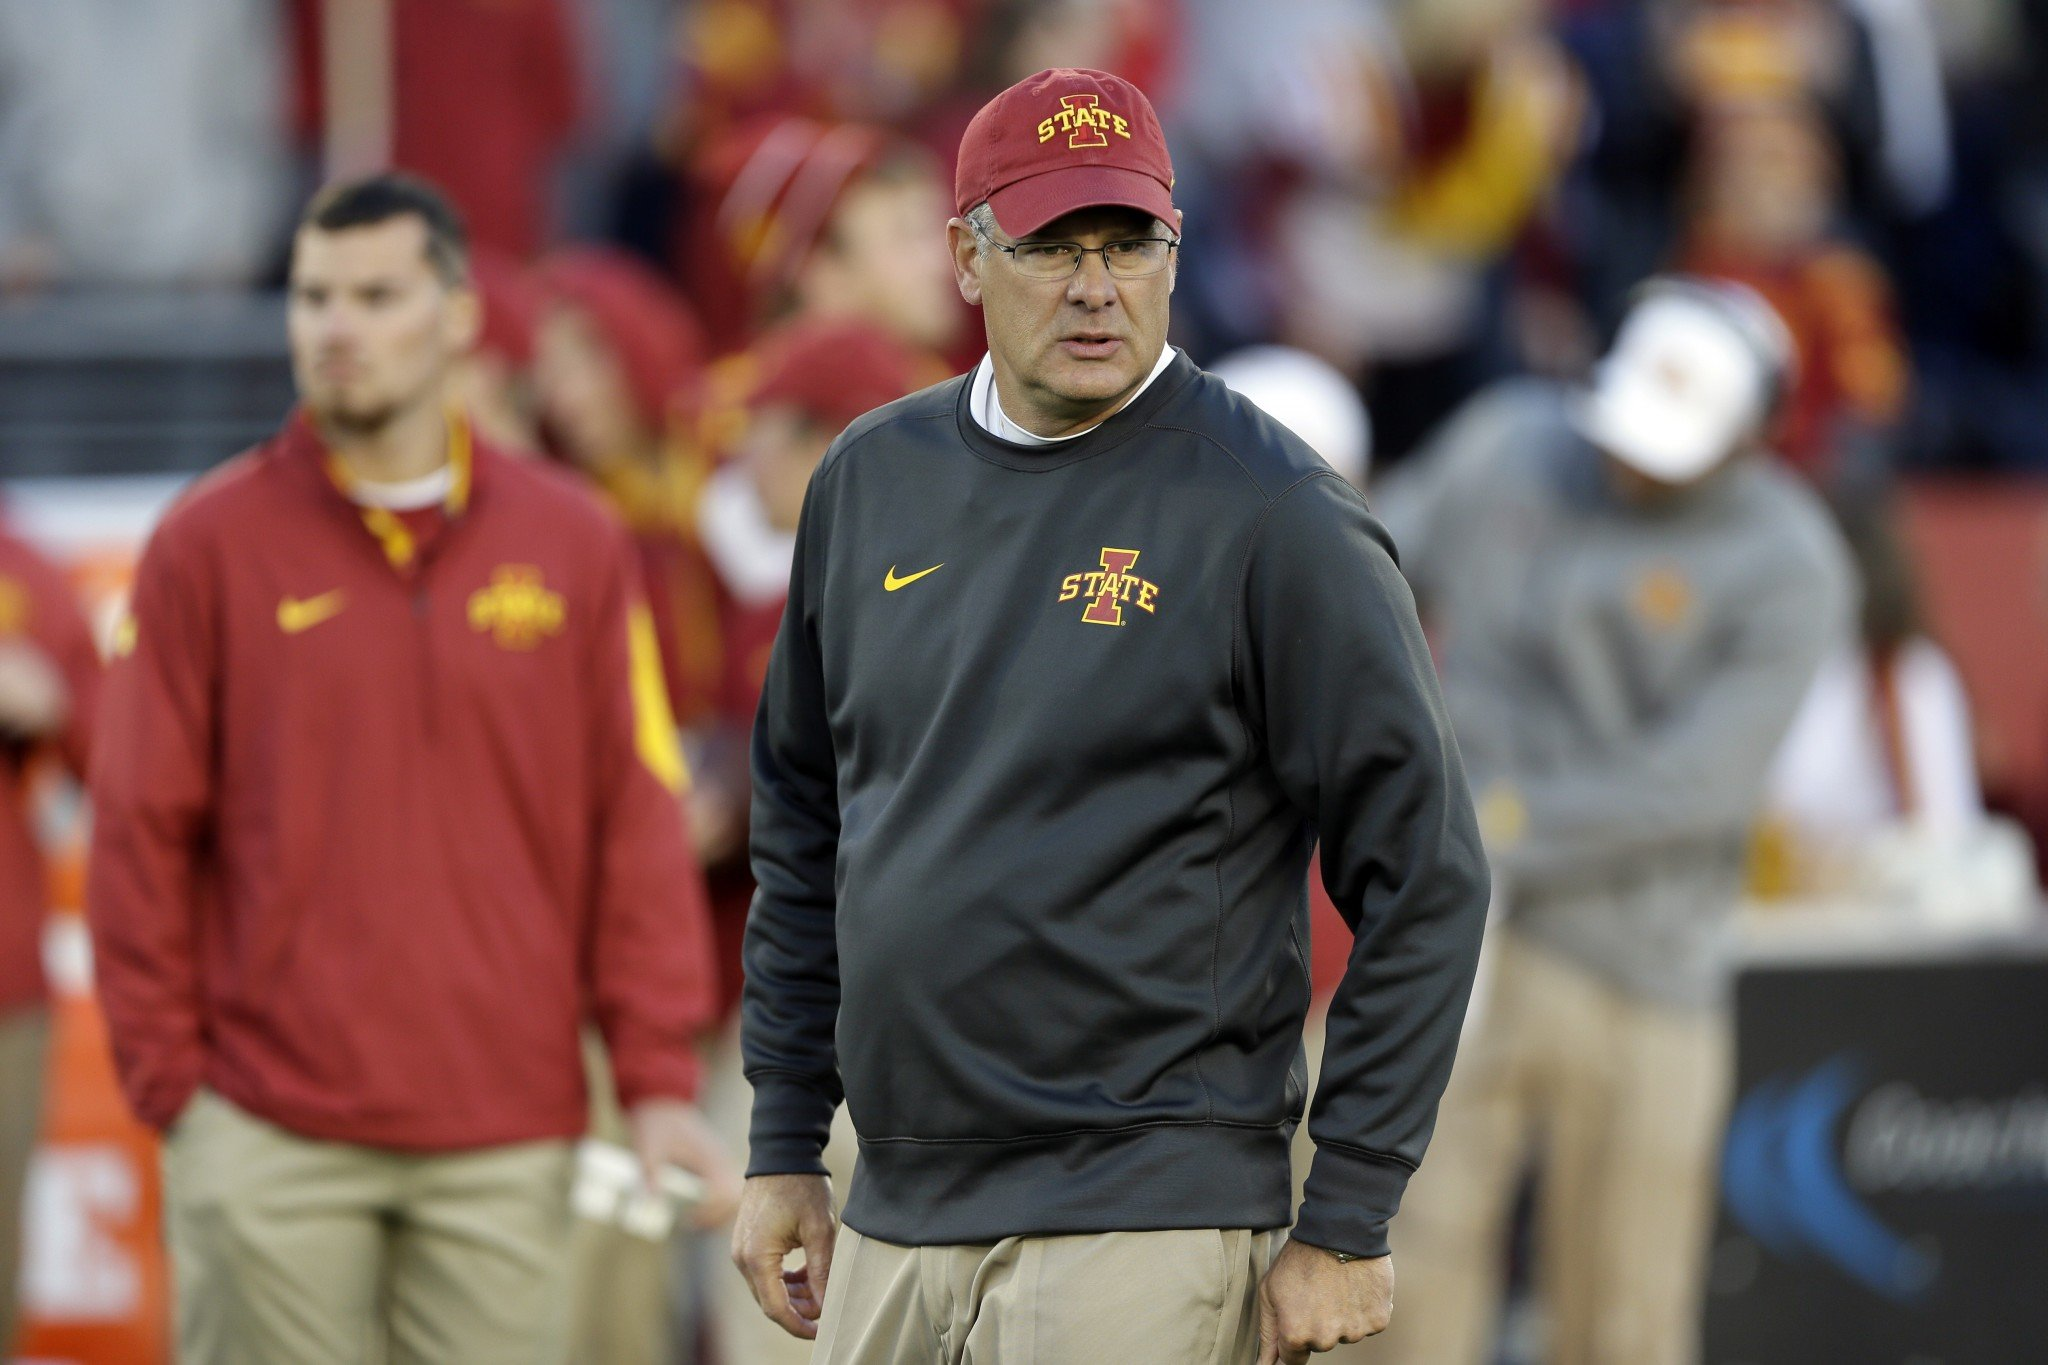 Paul Rhoads was the head coach at Iowa State for seven seasons before landing an assistant role at Arkansas. (AP Photo/Charlie Neibergall)